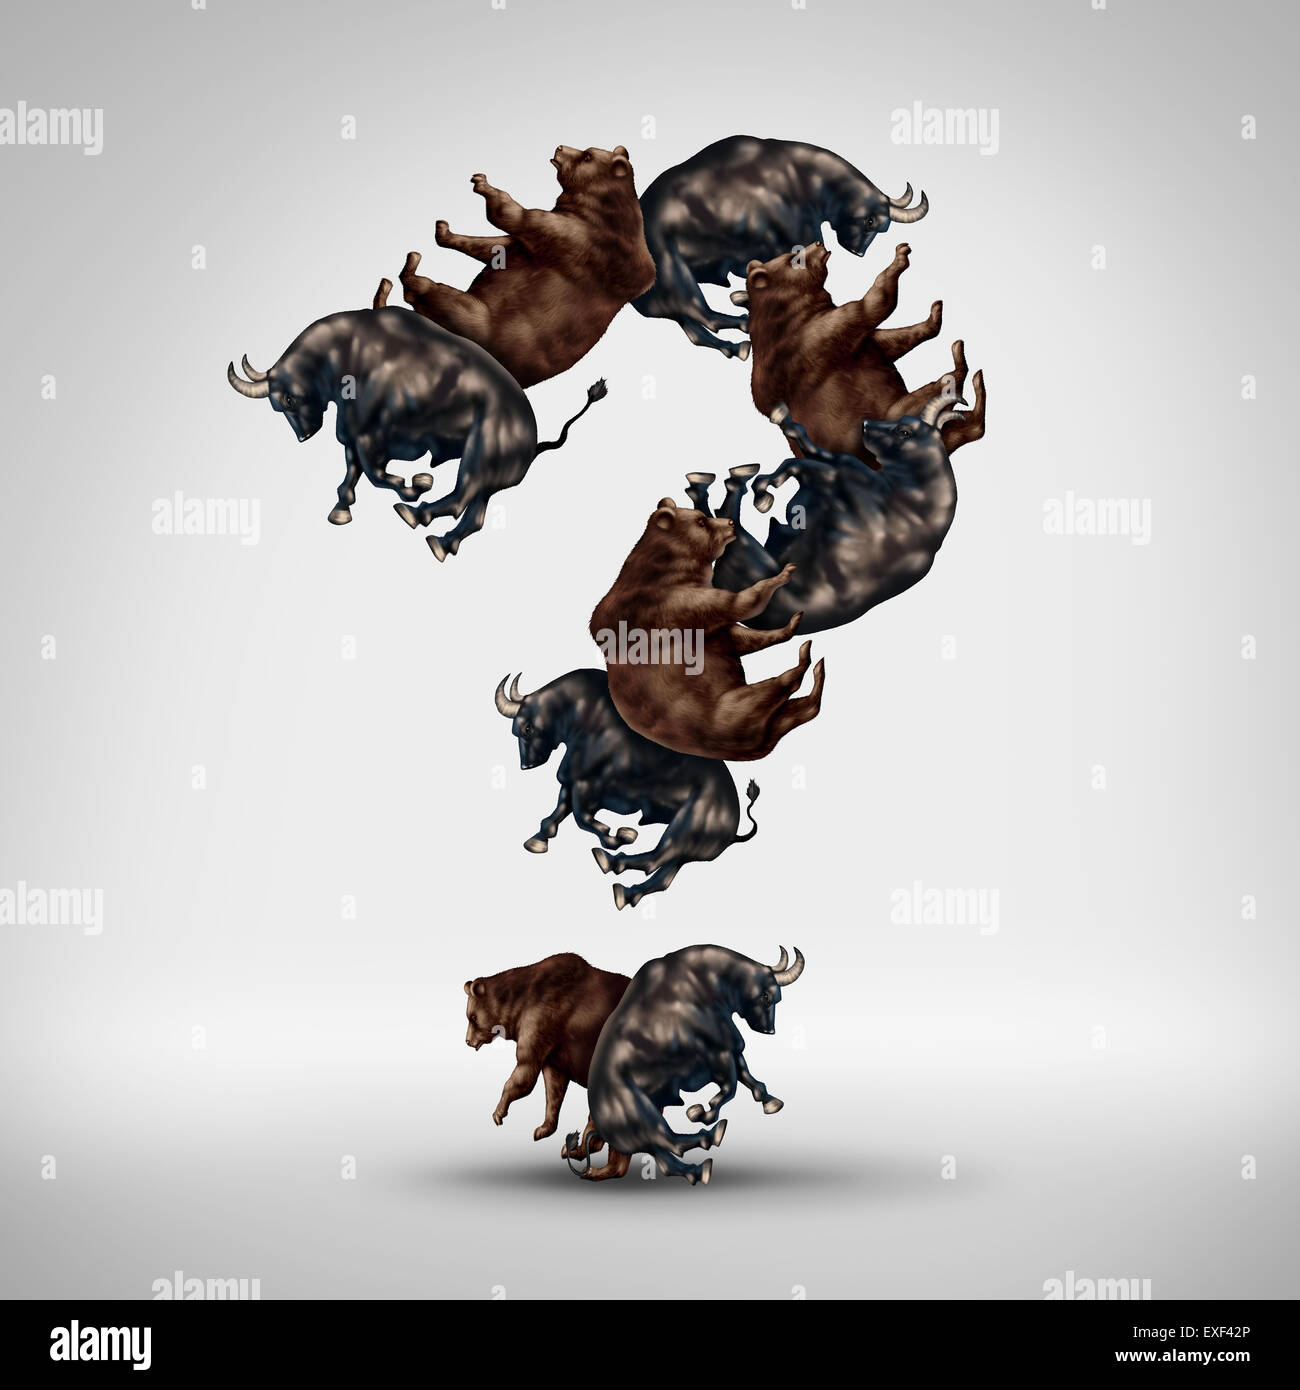 Bulls and bears questions with a stock market bull and bear shaped as a question mark as a financial investing concept - Stock Image